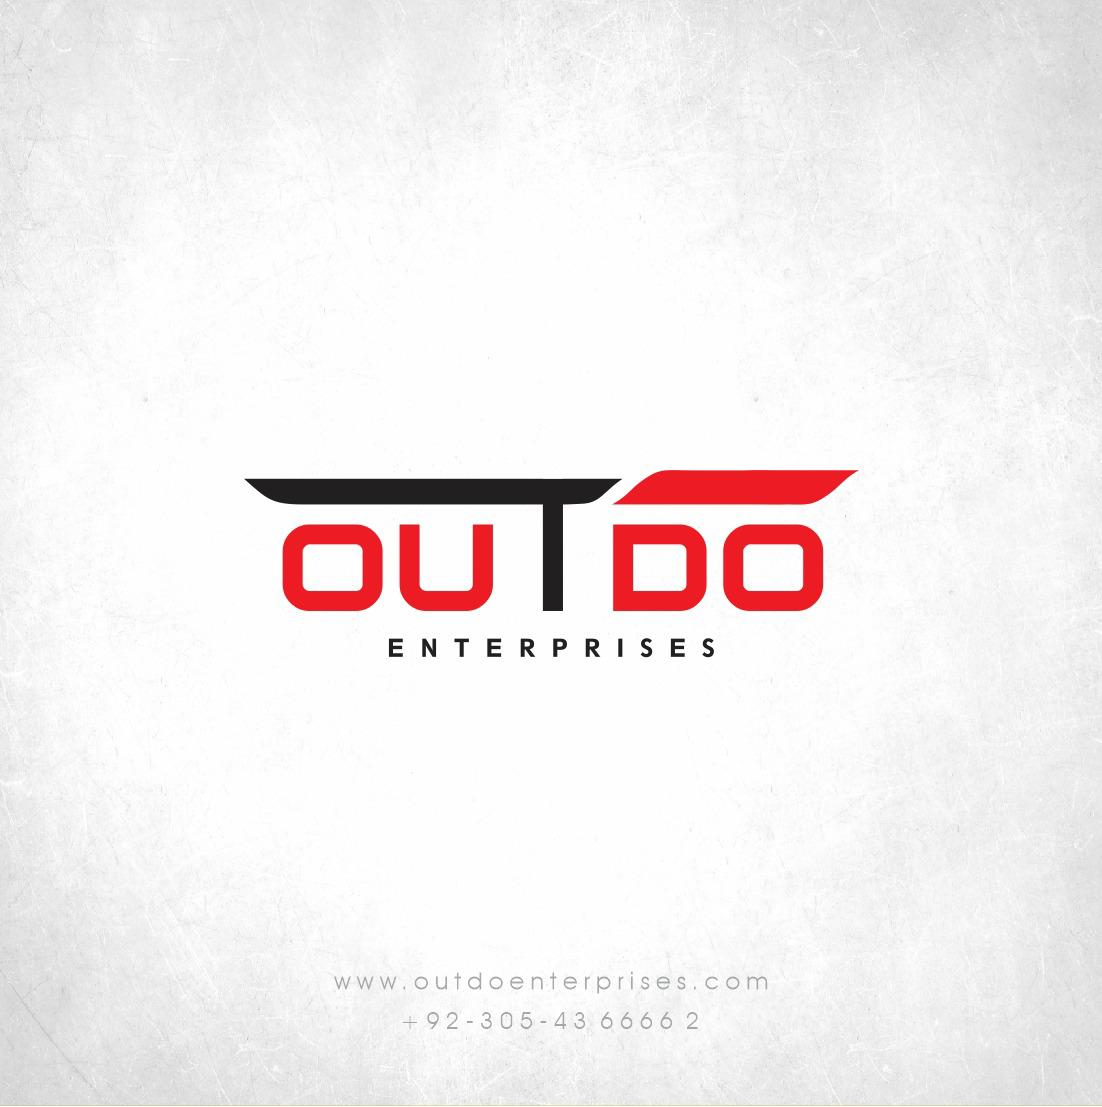 Outdo Enterprises